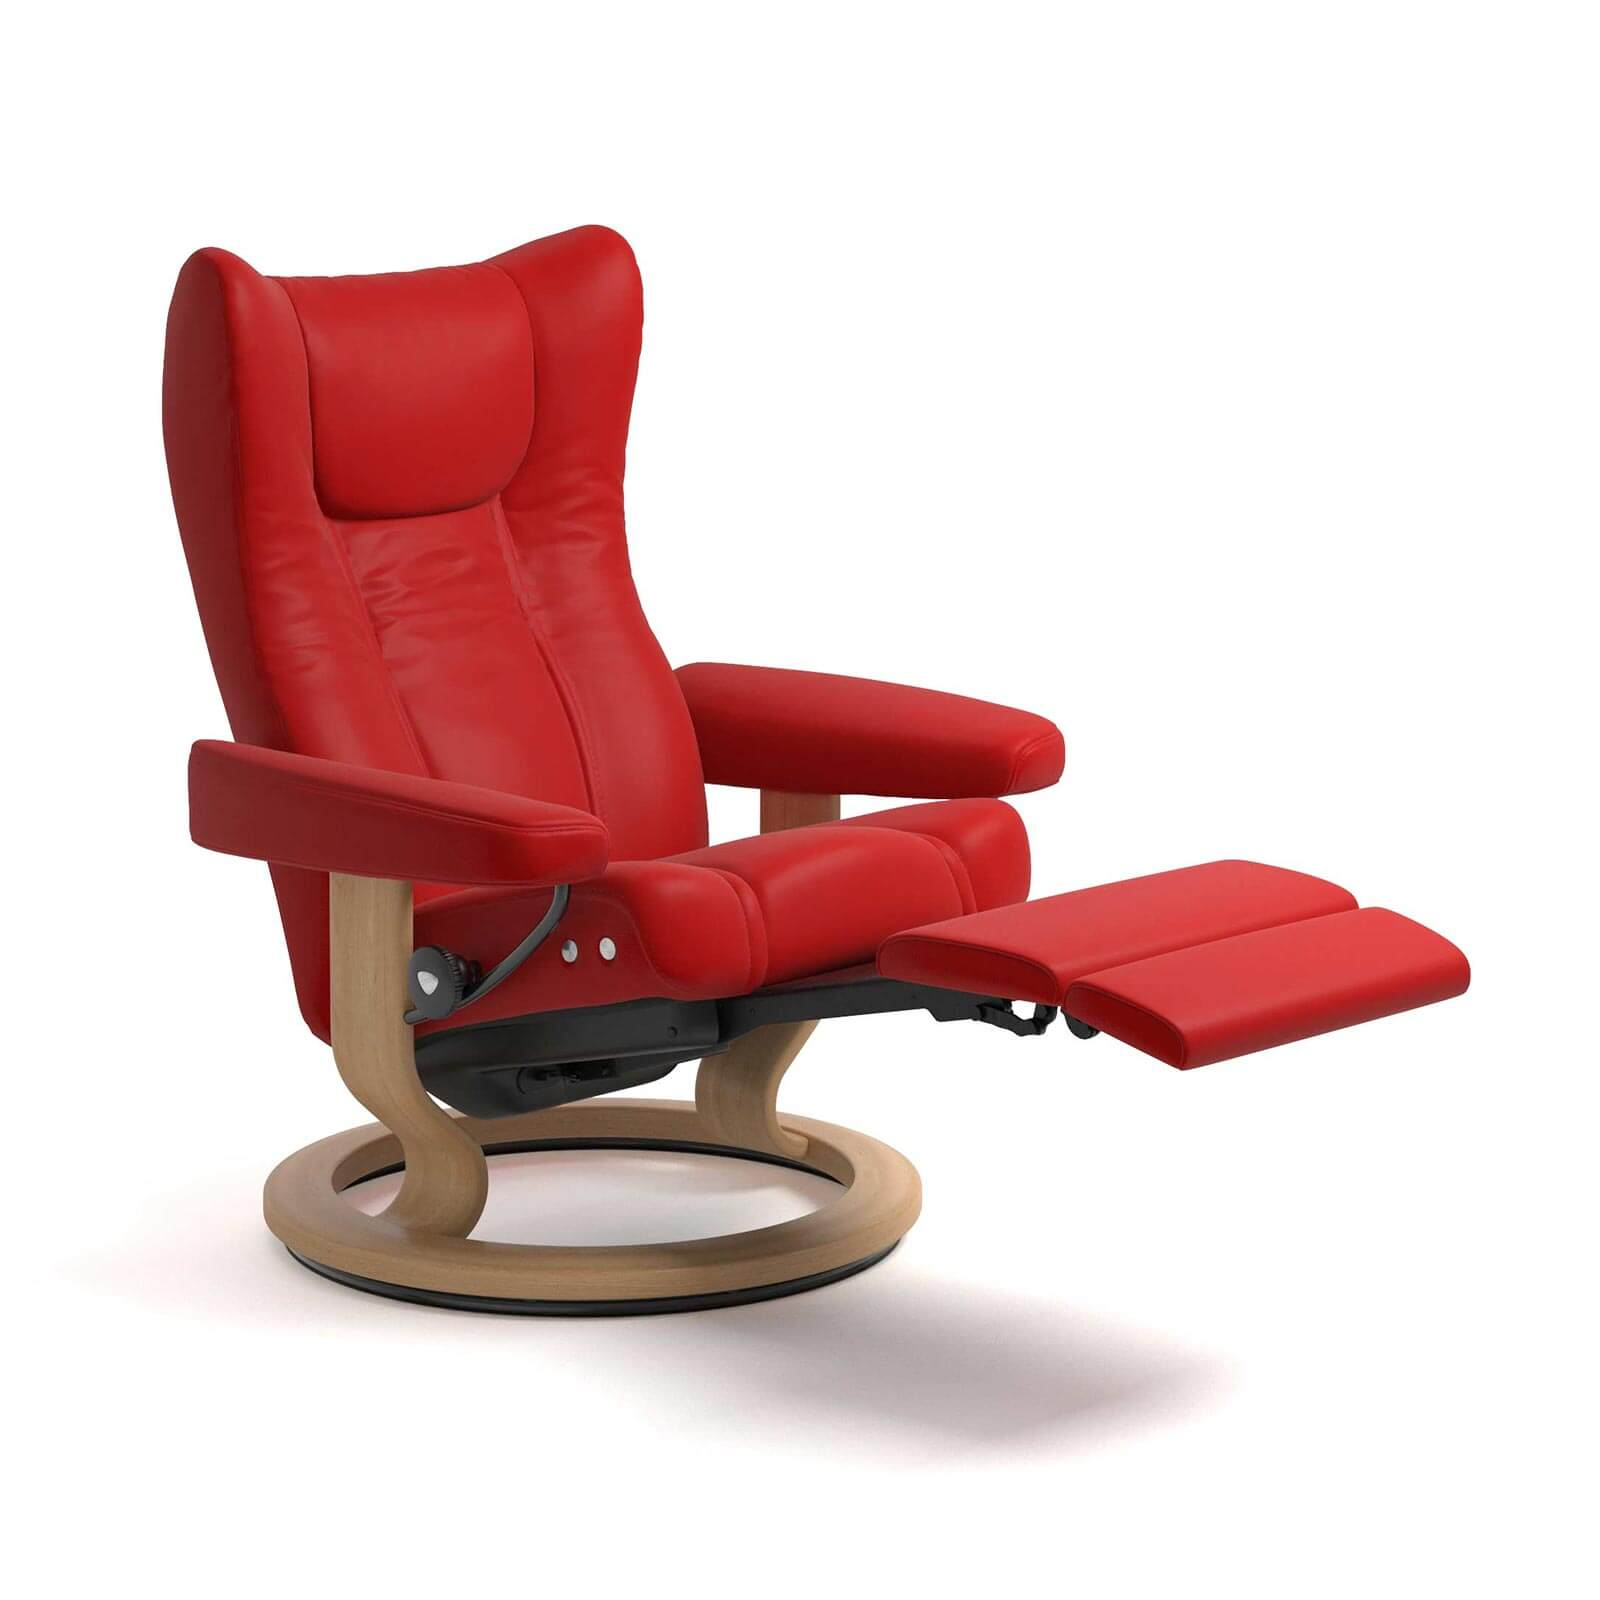 Stressless Sessel Testberichte Stressless Sessel Wing Chilli Red Legcomfort! | Stressless